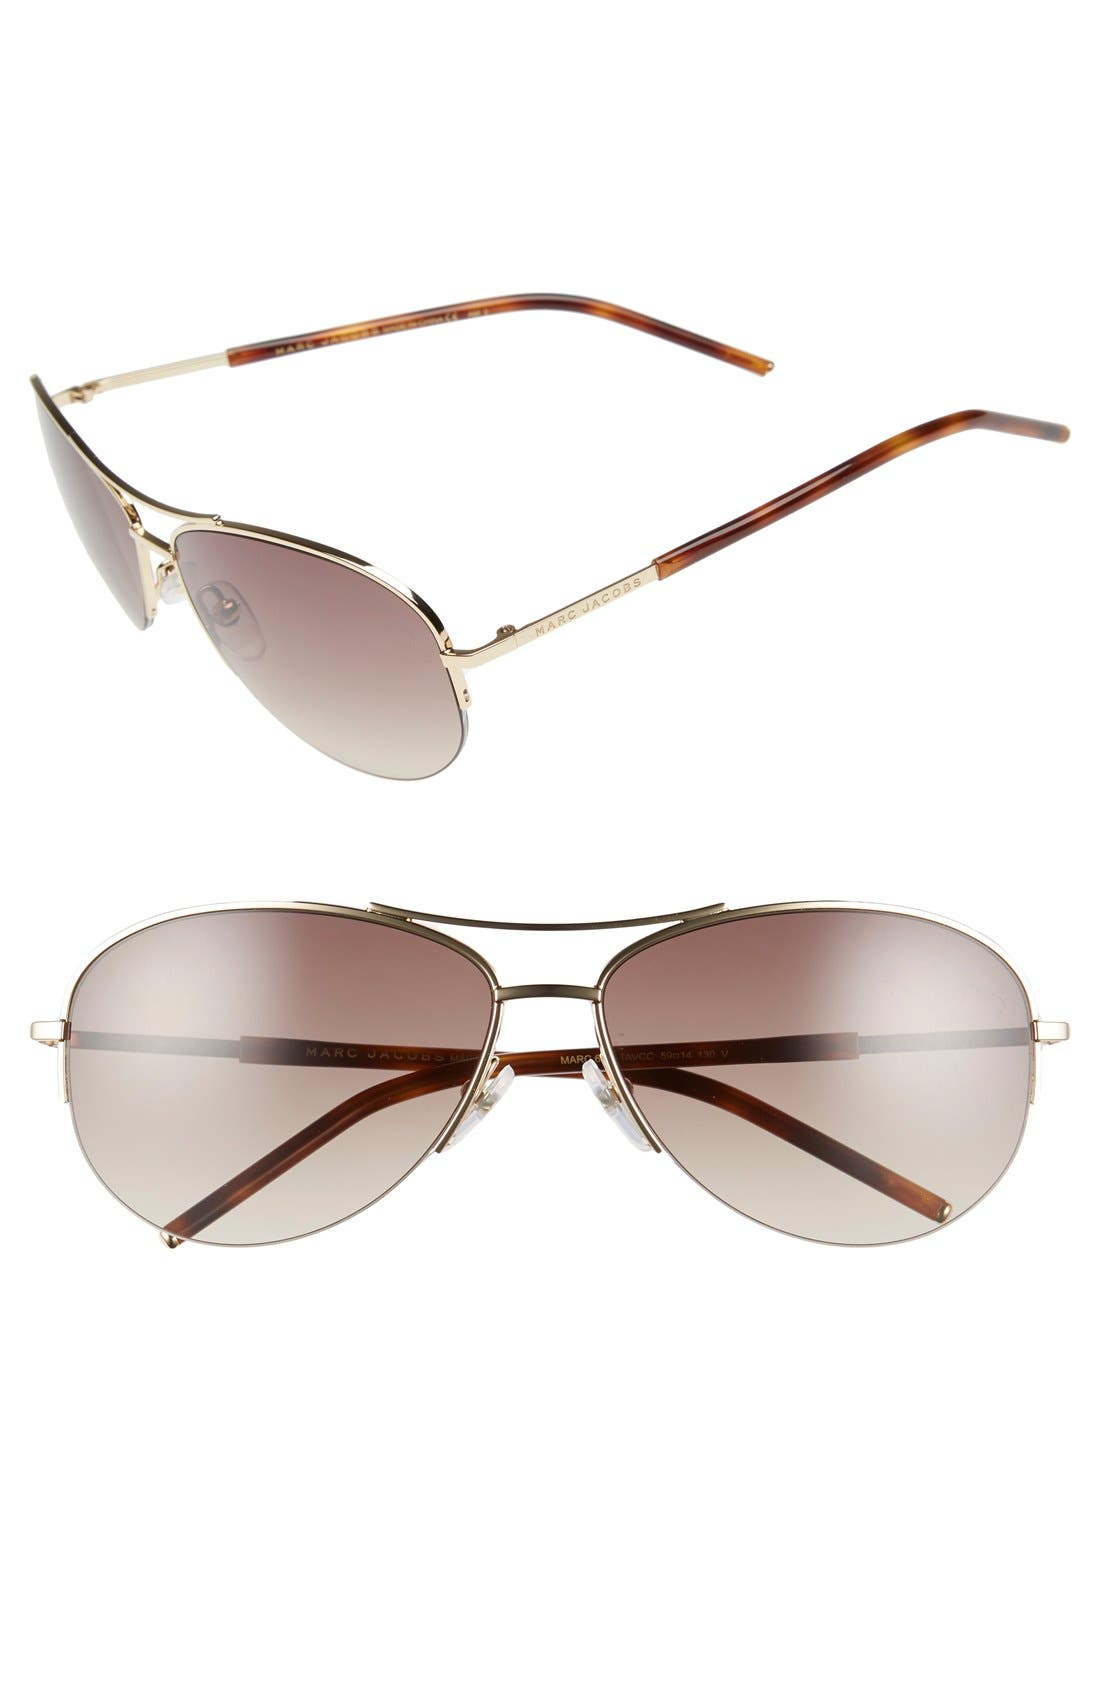 Alternate Image 1 Selected - MARC JACOBS 59mm Semi Rimless Sunglasses